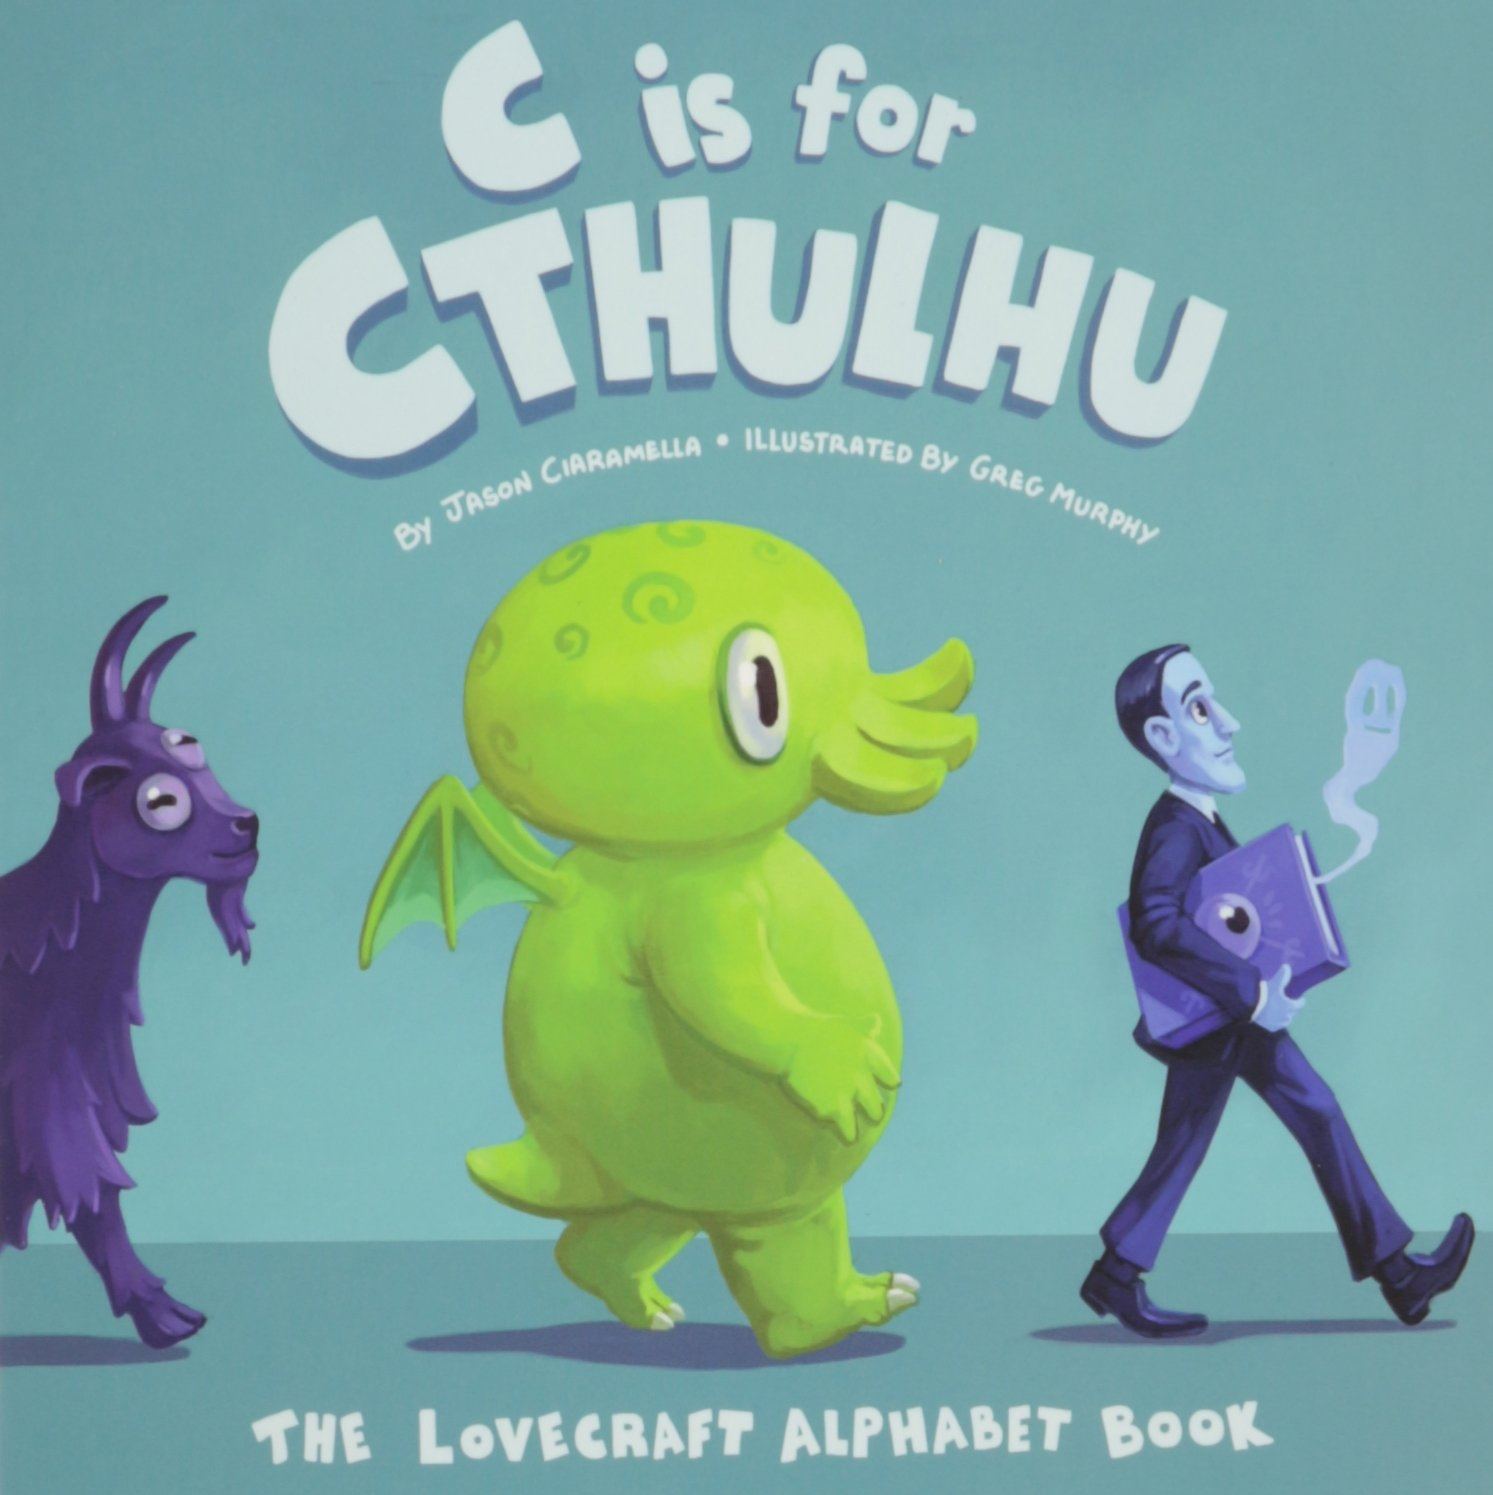 C Is For Cthulhu The Lovecraft Alphabet Book Greg Murphy Jason Ciaramella 9780983068983 Amazon Books